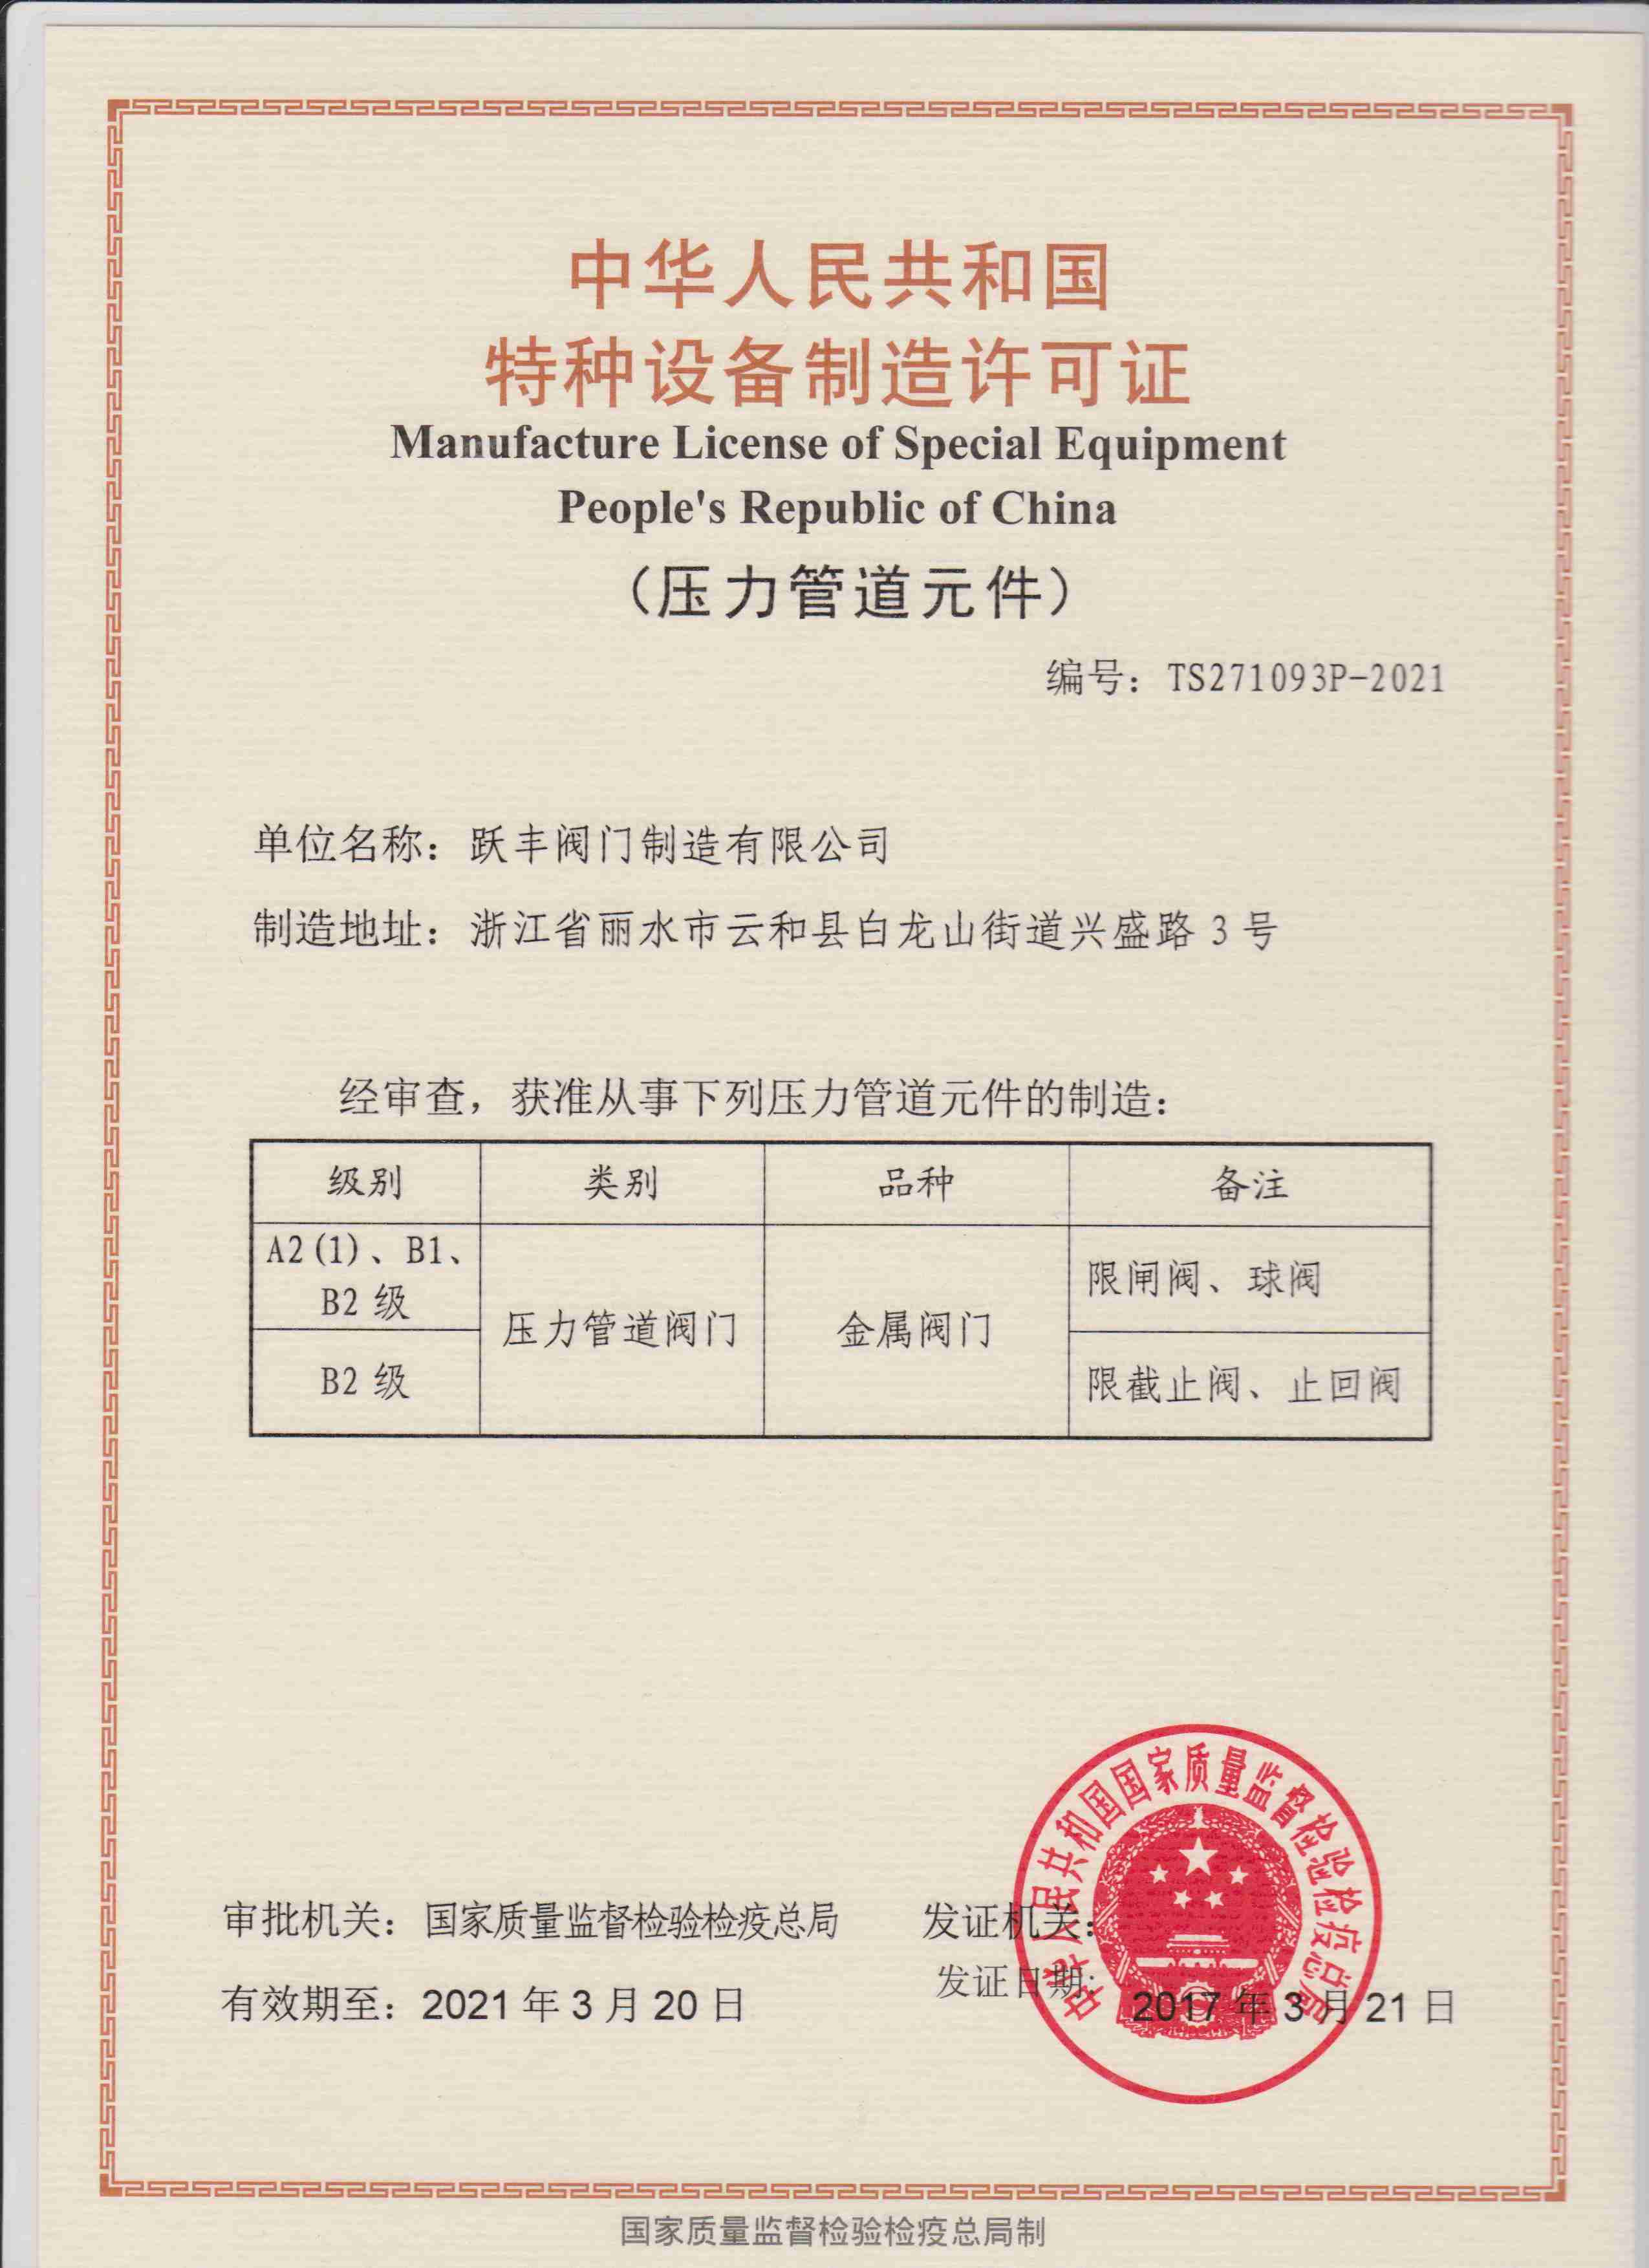 manufacture license of special equipment certificate